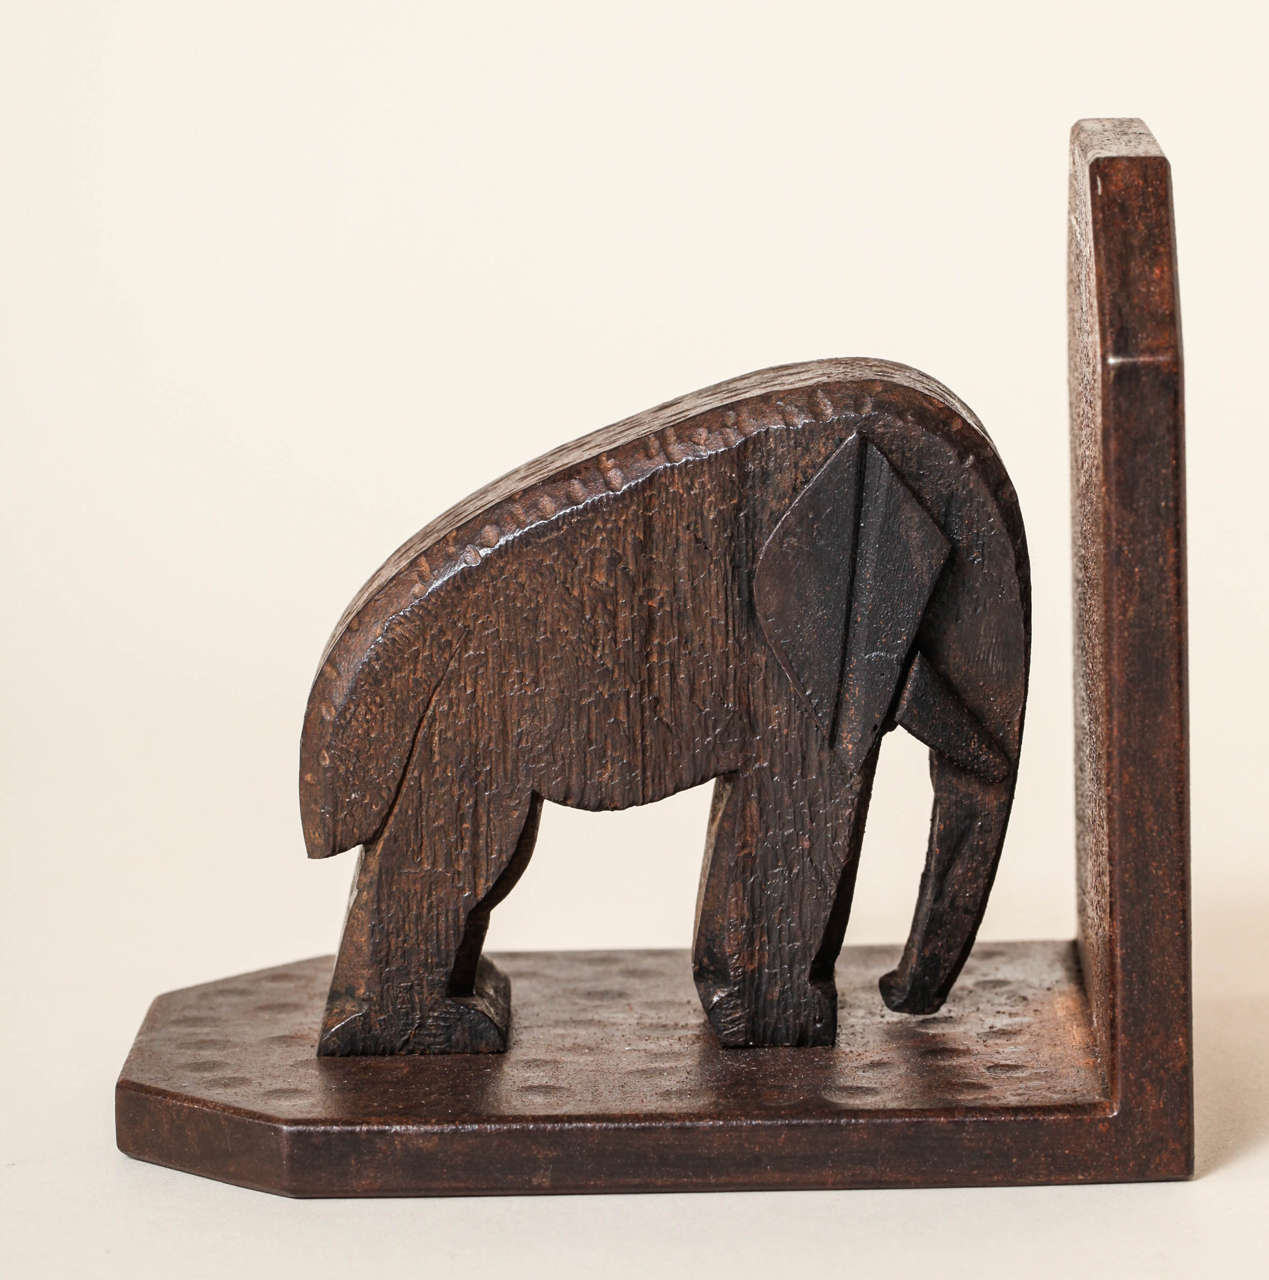 20th Century Michel Zadounaisky French Art Deco Wrought Iron Elephant Bookends For Sale